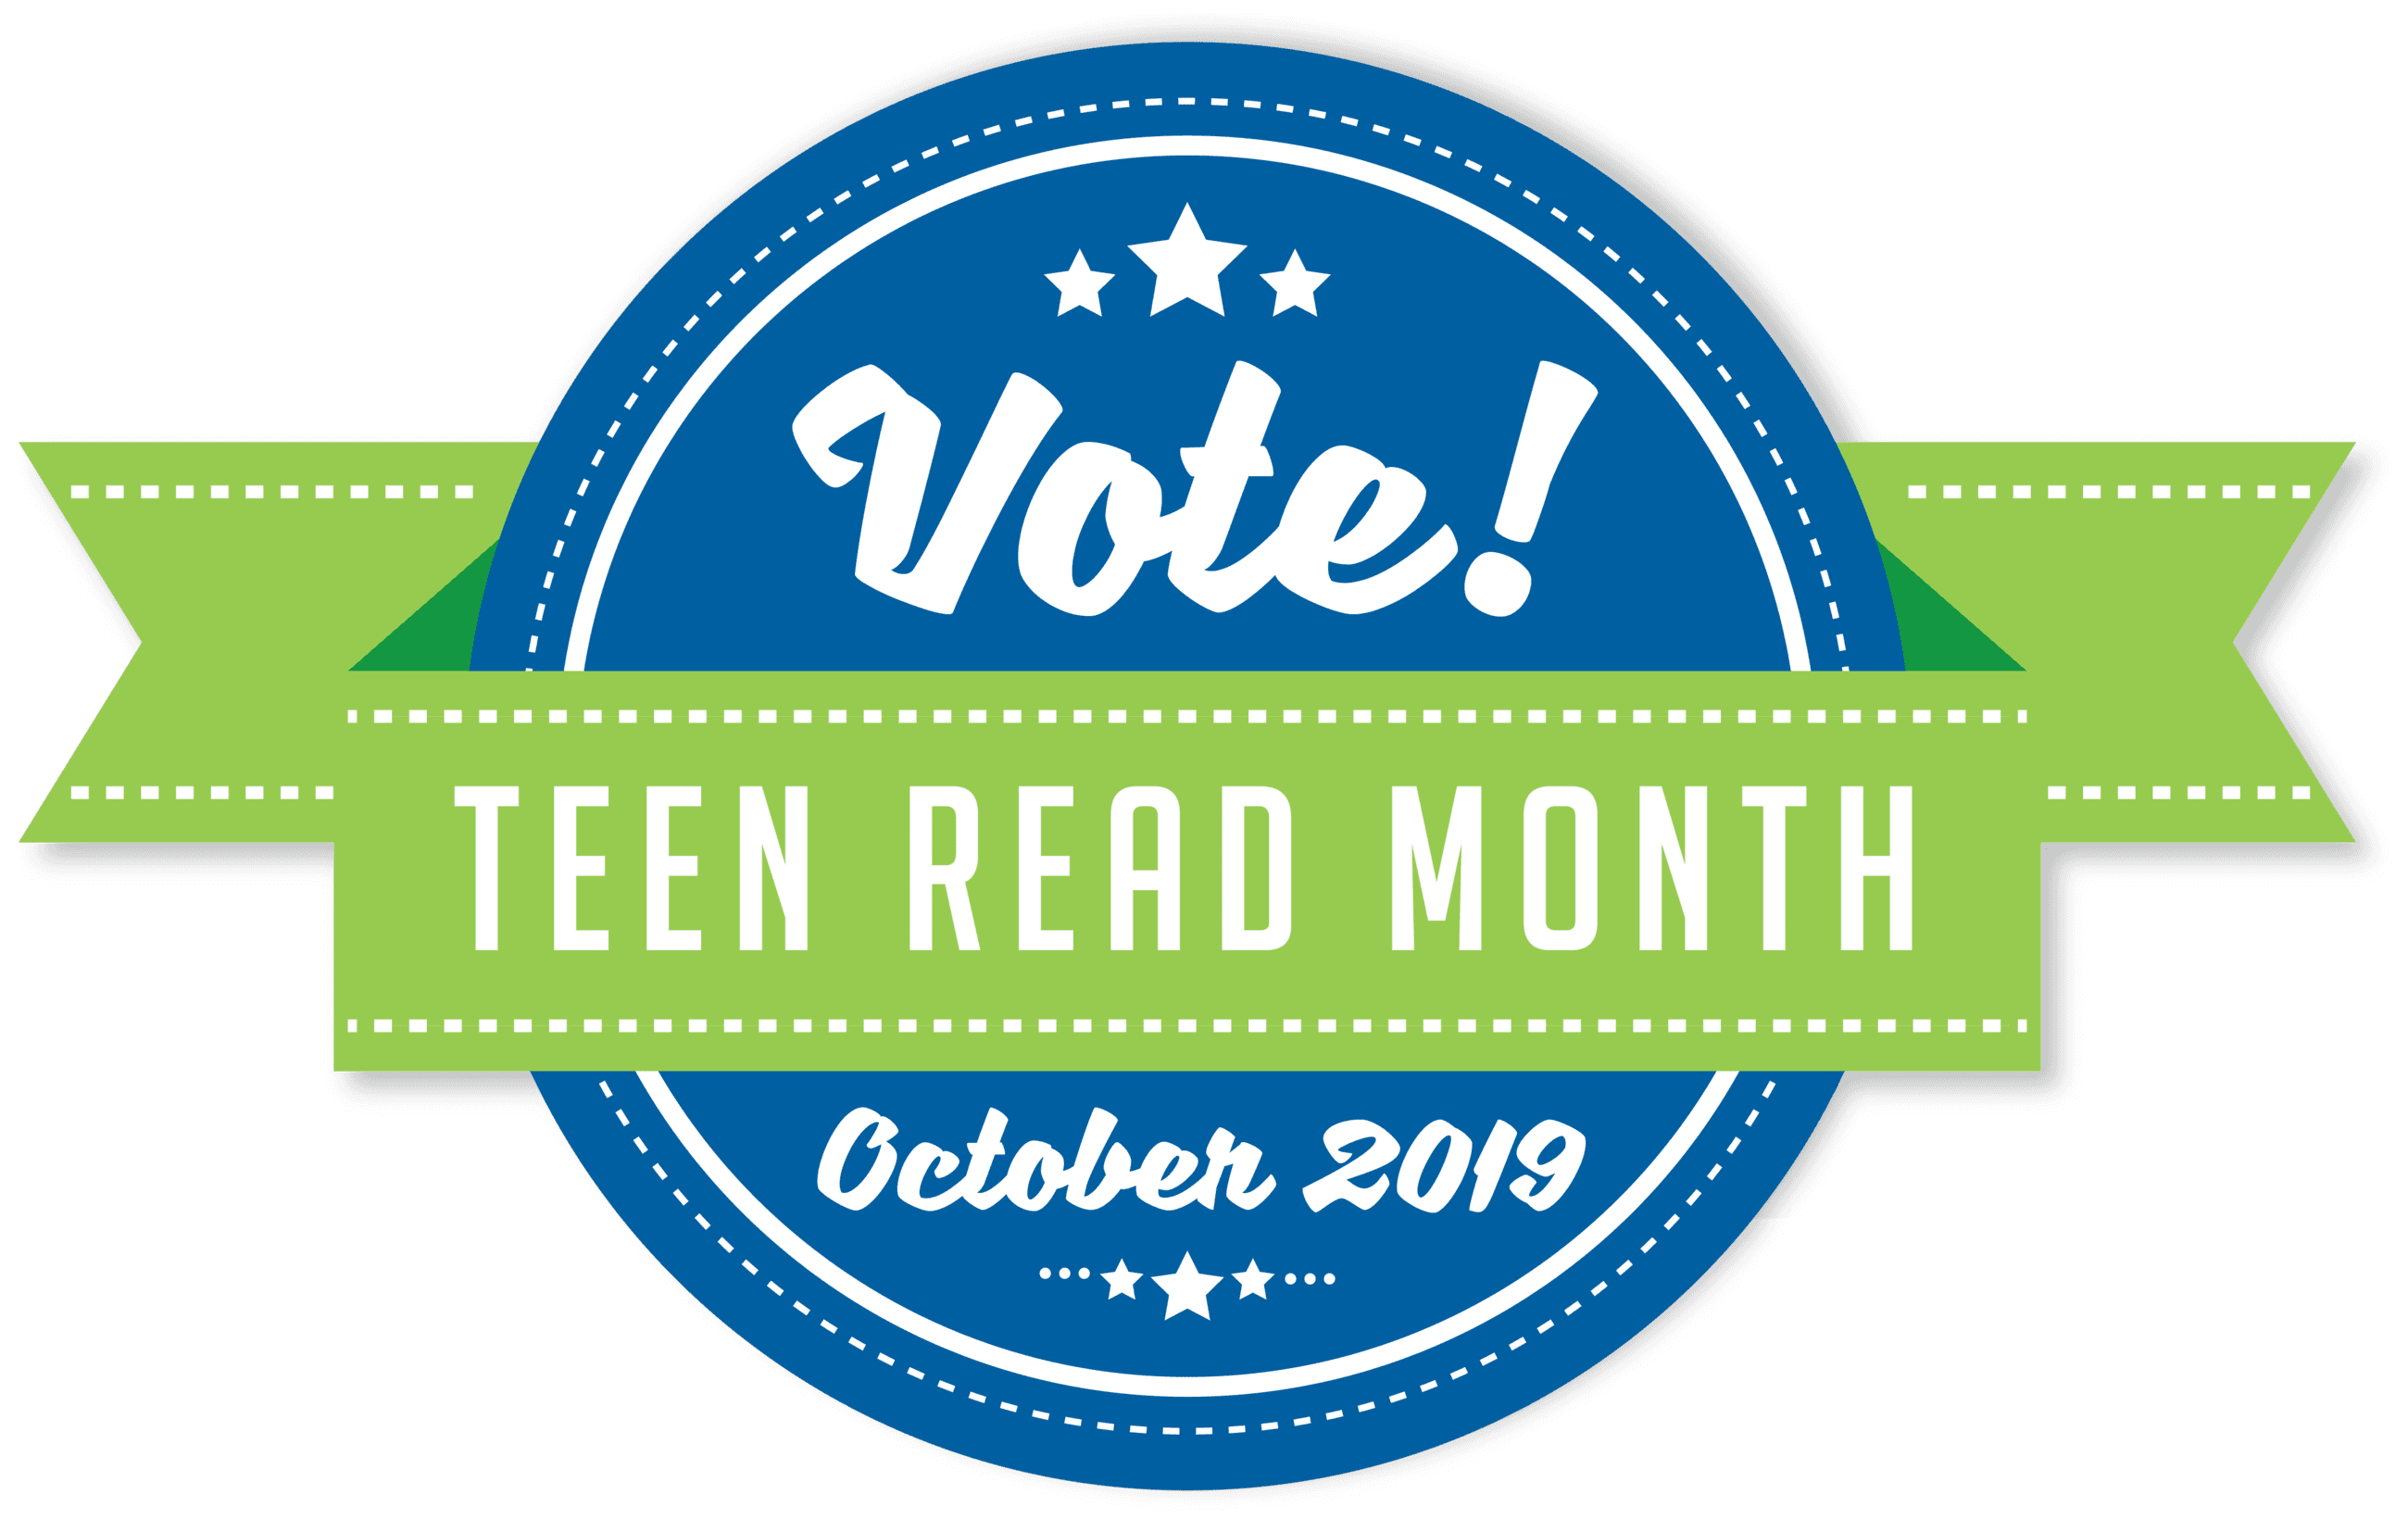 Teen Read Month 2019 logo